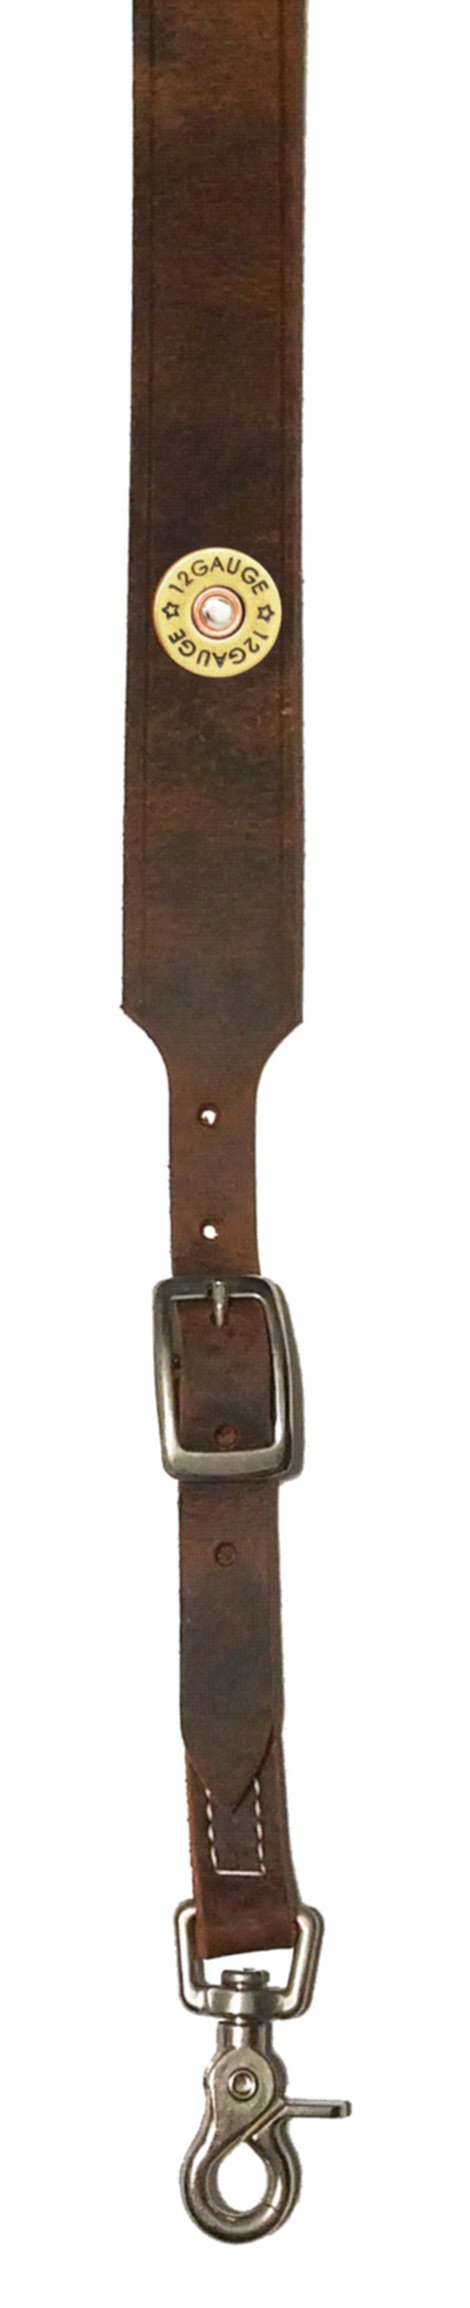 Custom 12 Gauge Shotgun Leather suspenders in Bay Apache Brown. Made in the USA